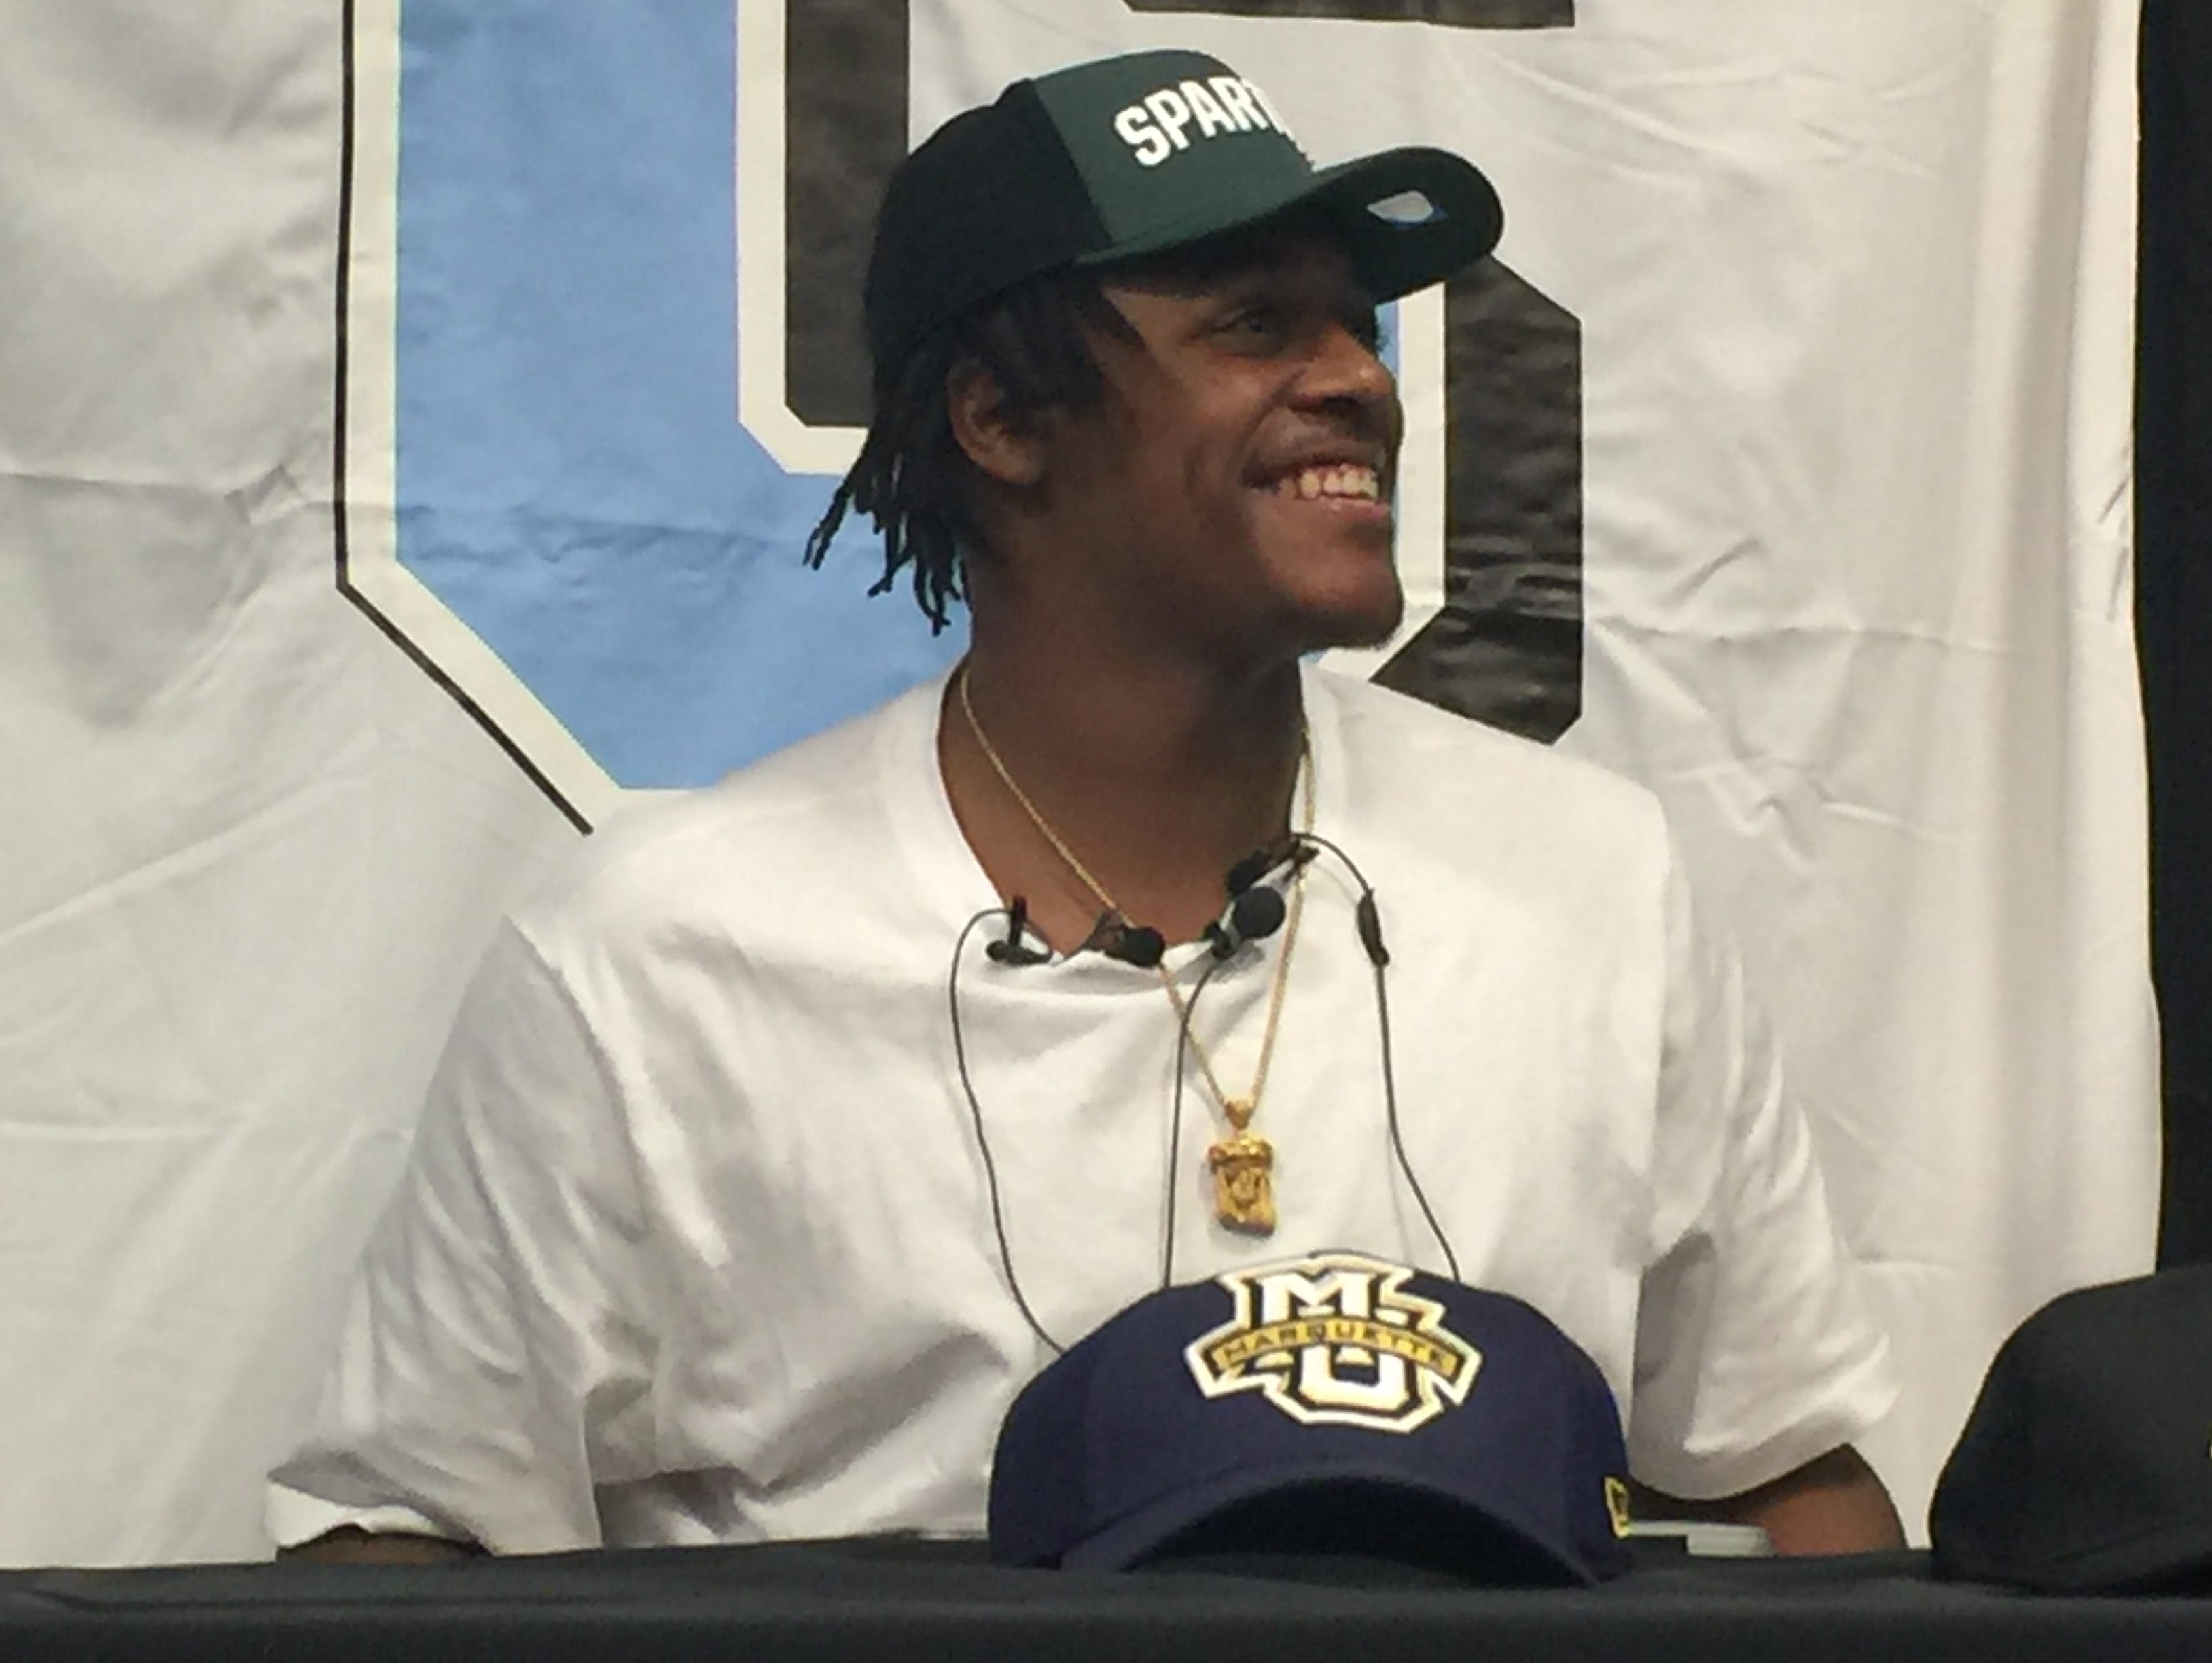 Grand Rapids Christian power forward/center Xavier Tillman wears an MSU hat after committing to the Spartans on Sept. 30, 2016.